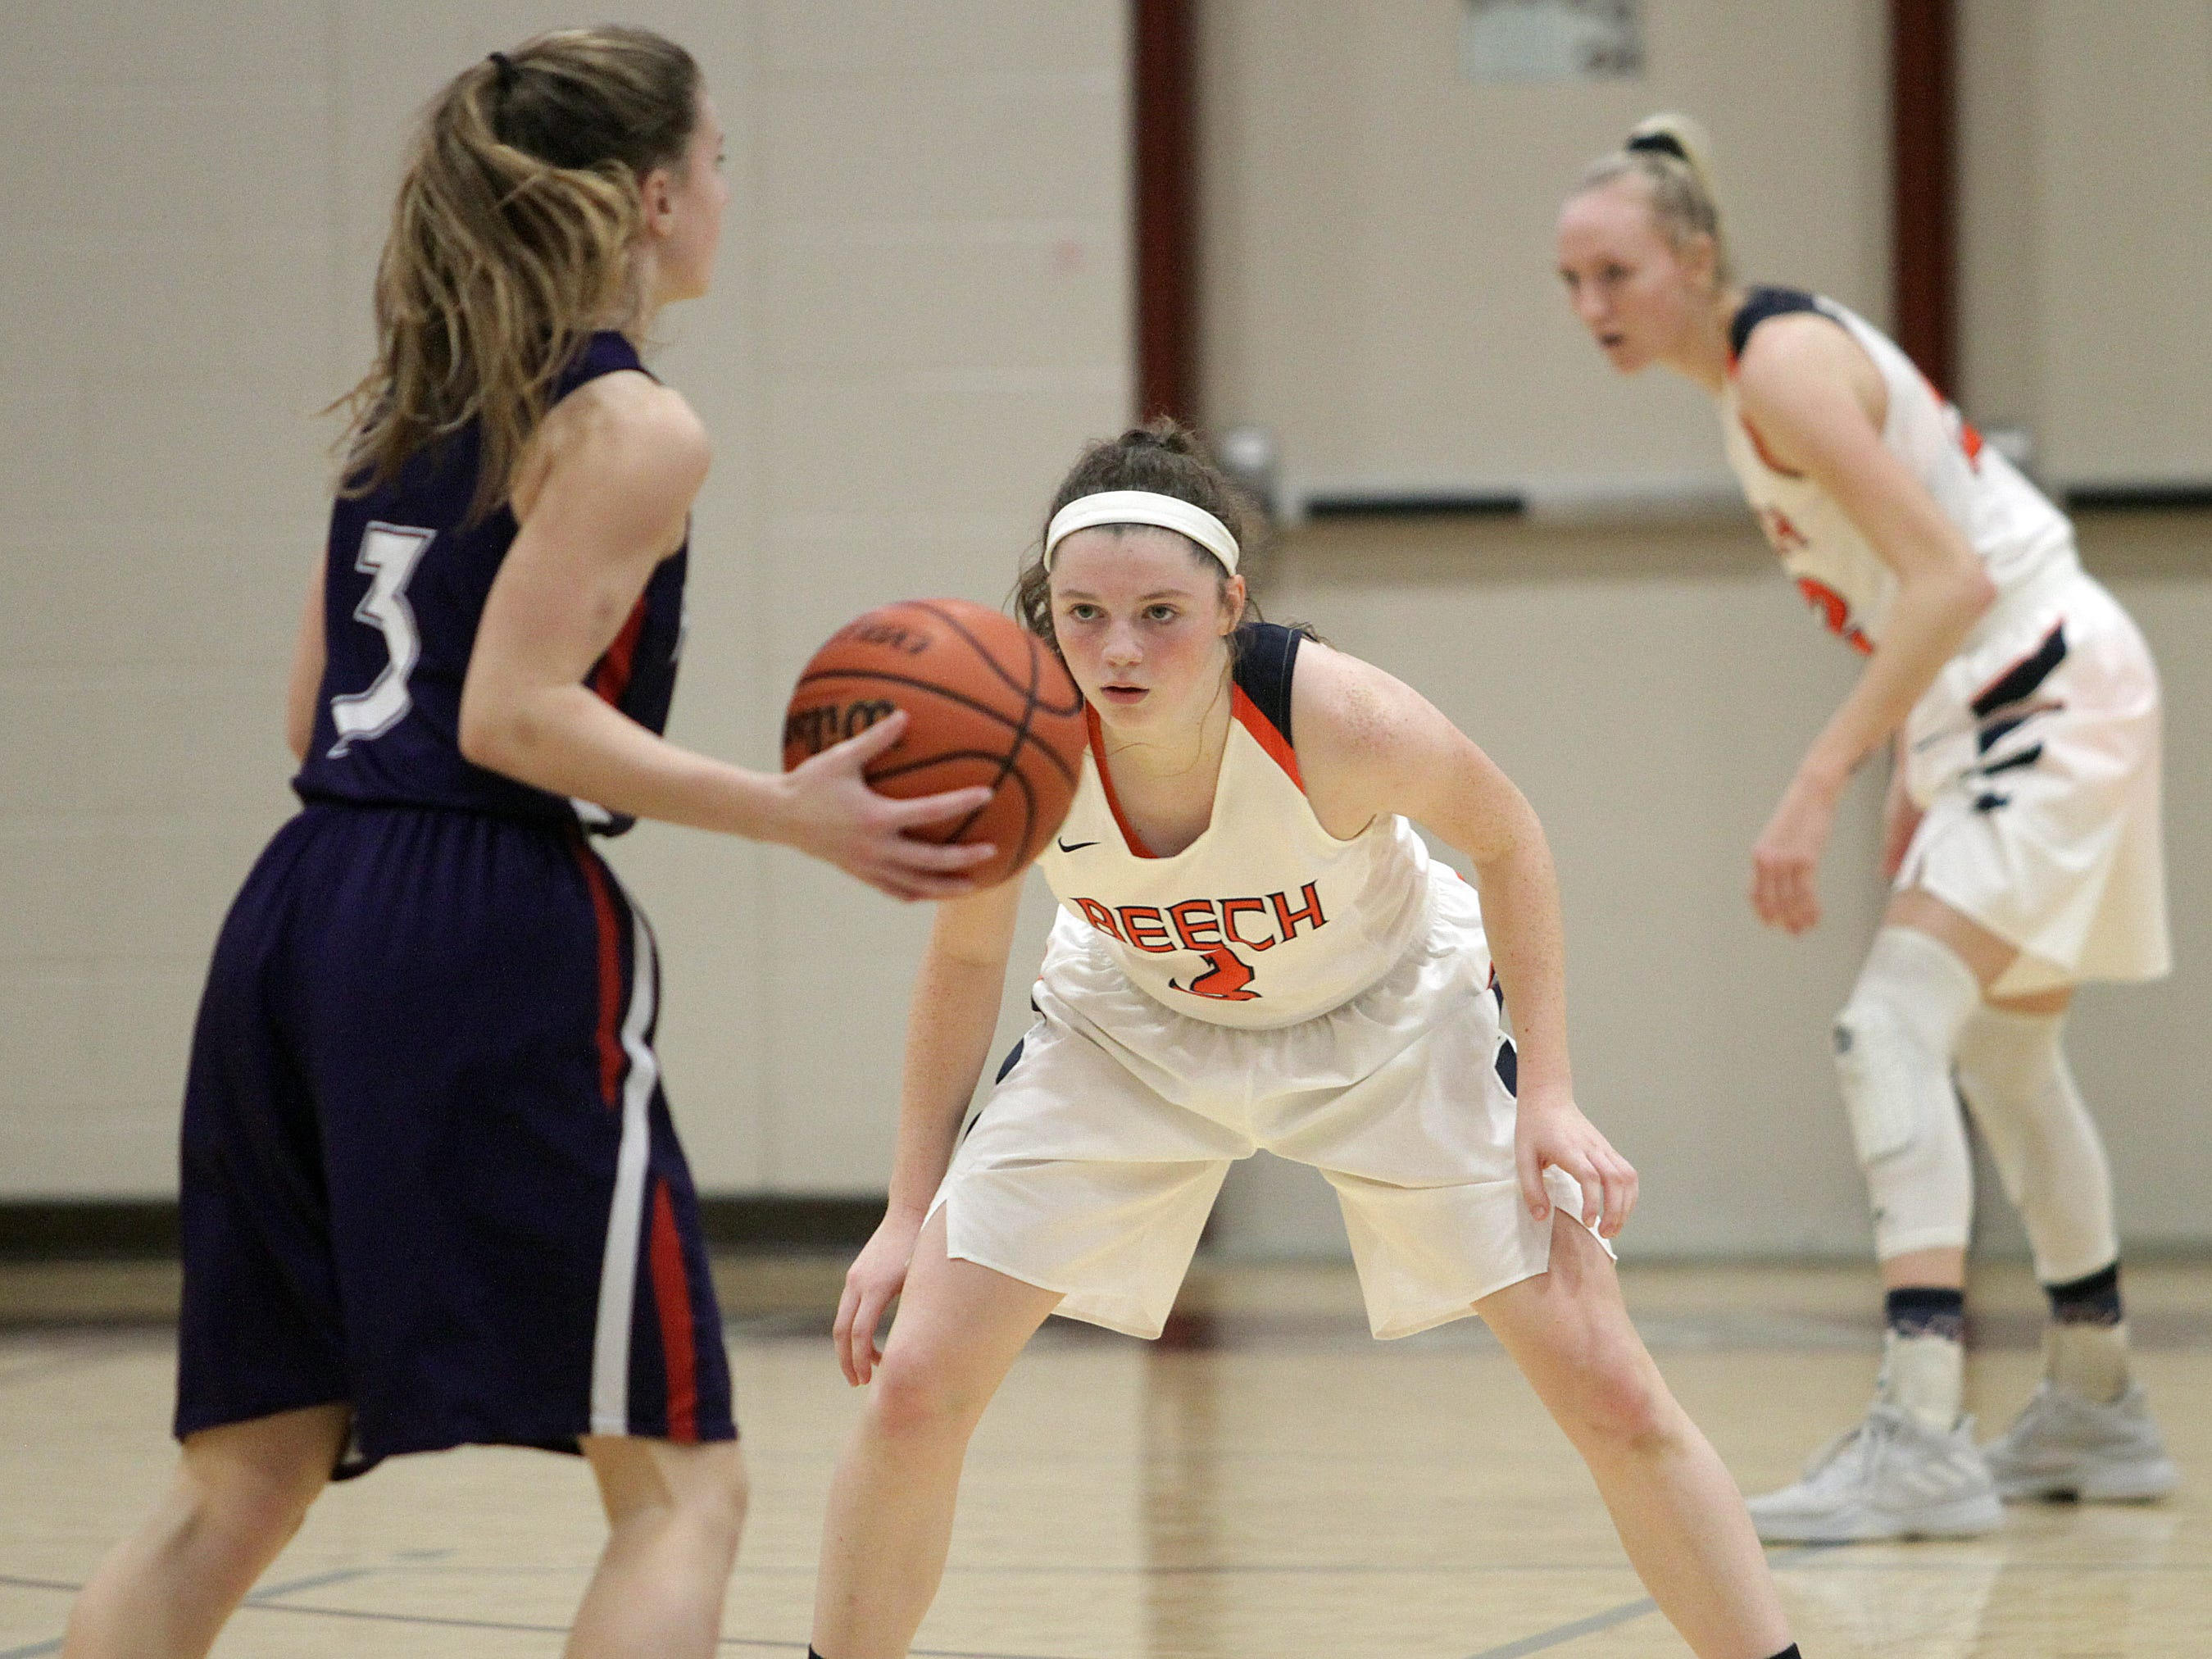 Beech's Jana Claire Swafford guards Father Ryan's Marilee Hulse on Saturday, December 29, 2018.